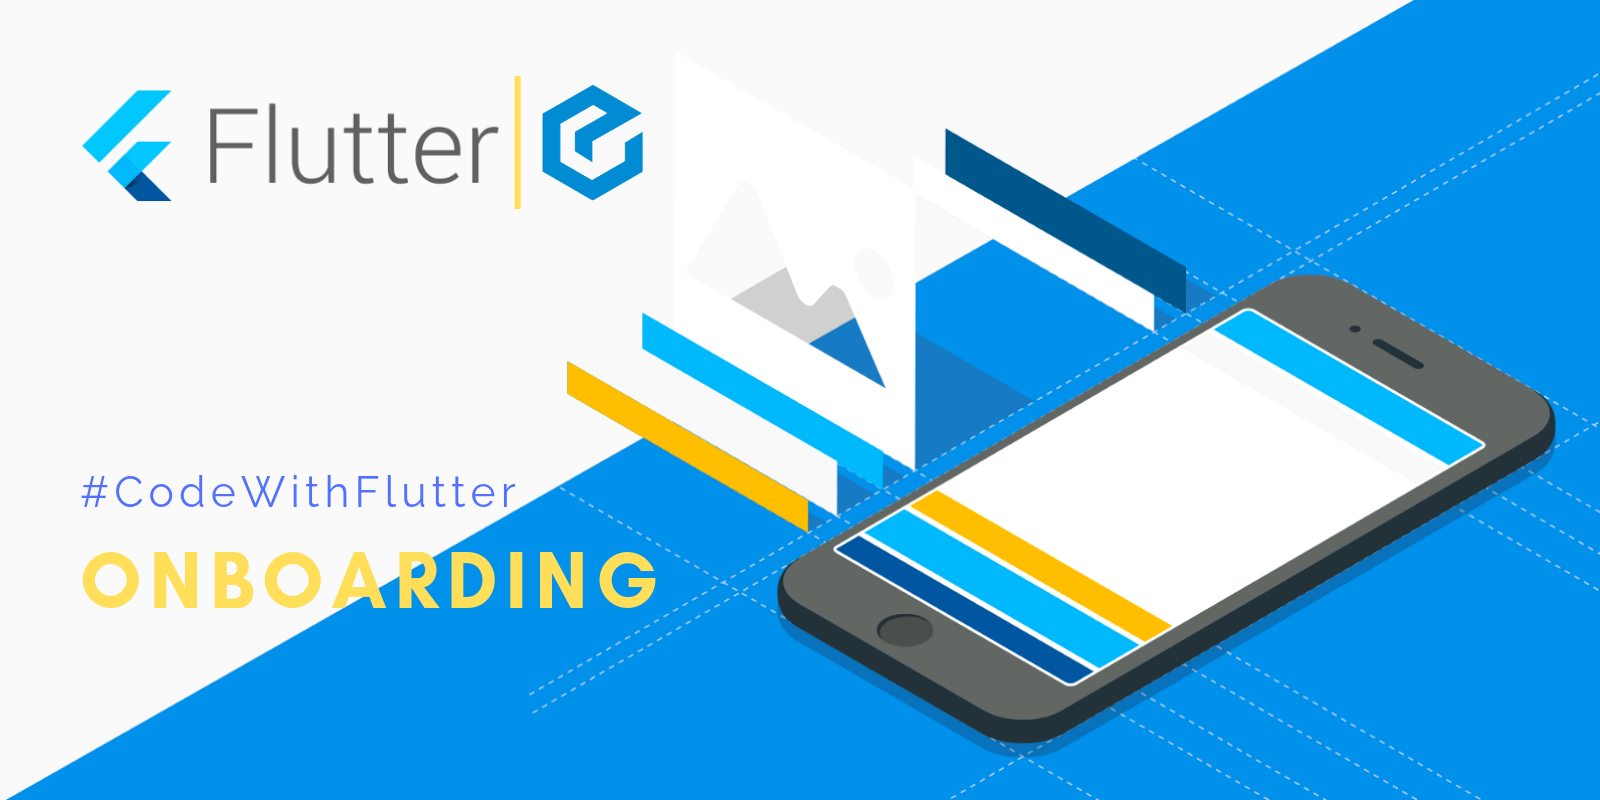 How to install Flutter and create a simple Flutter app